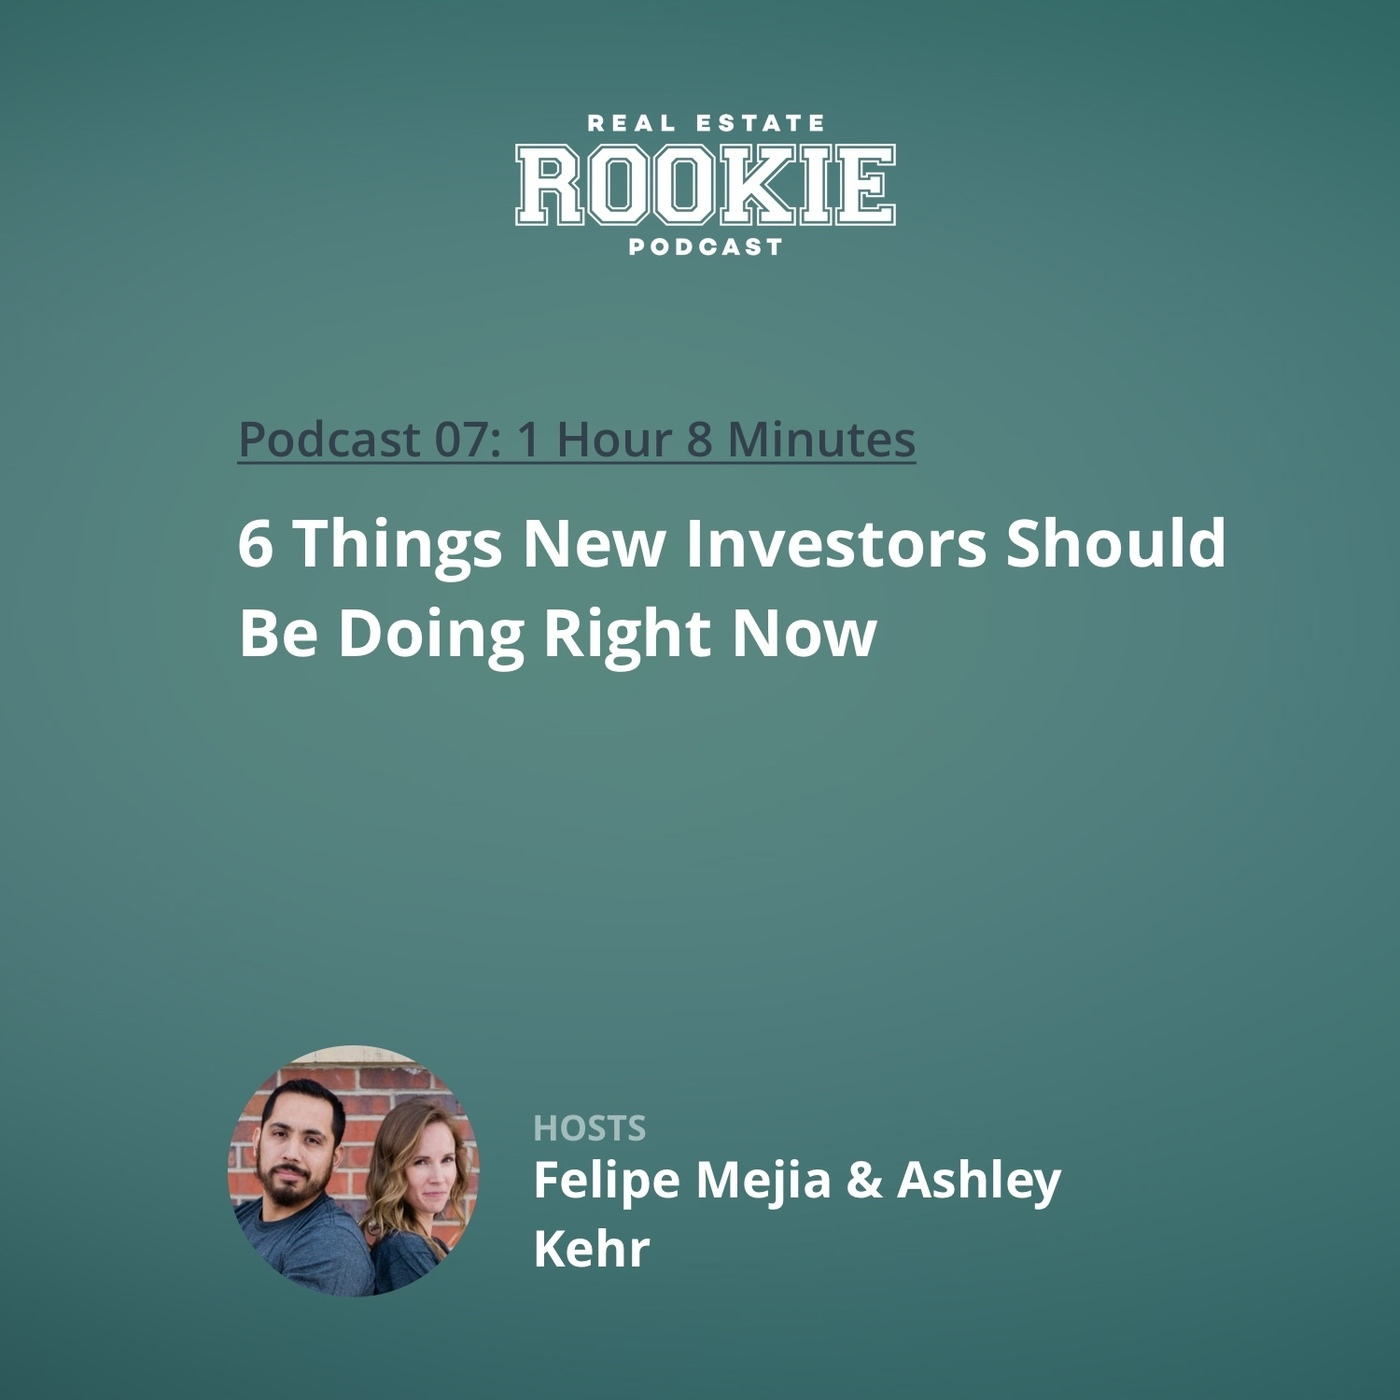 6 Things New Investors Should Be Doing Right Now